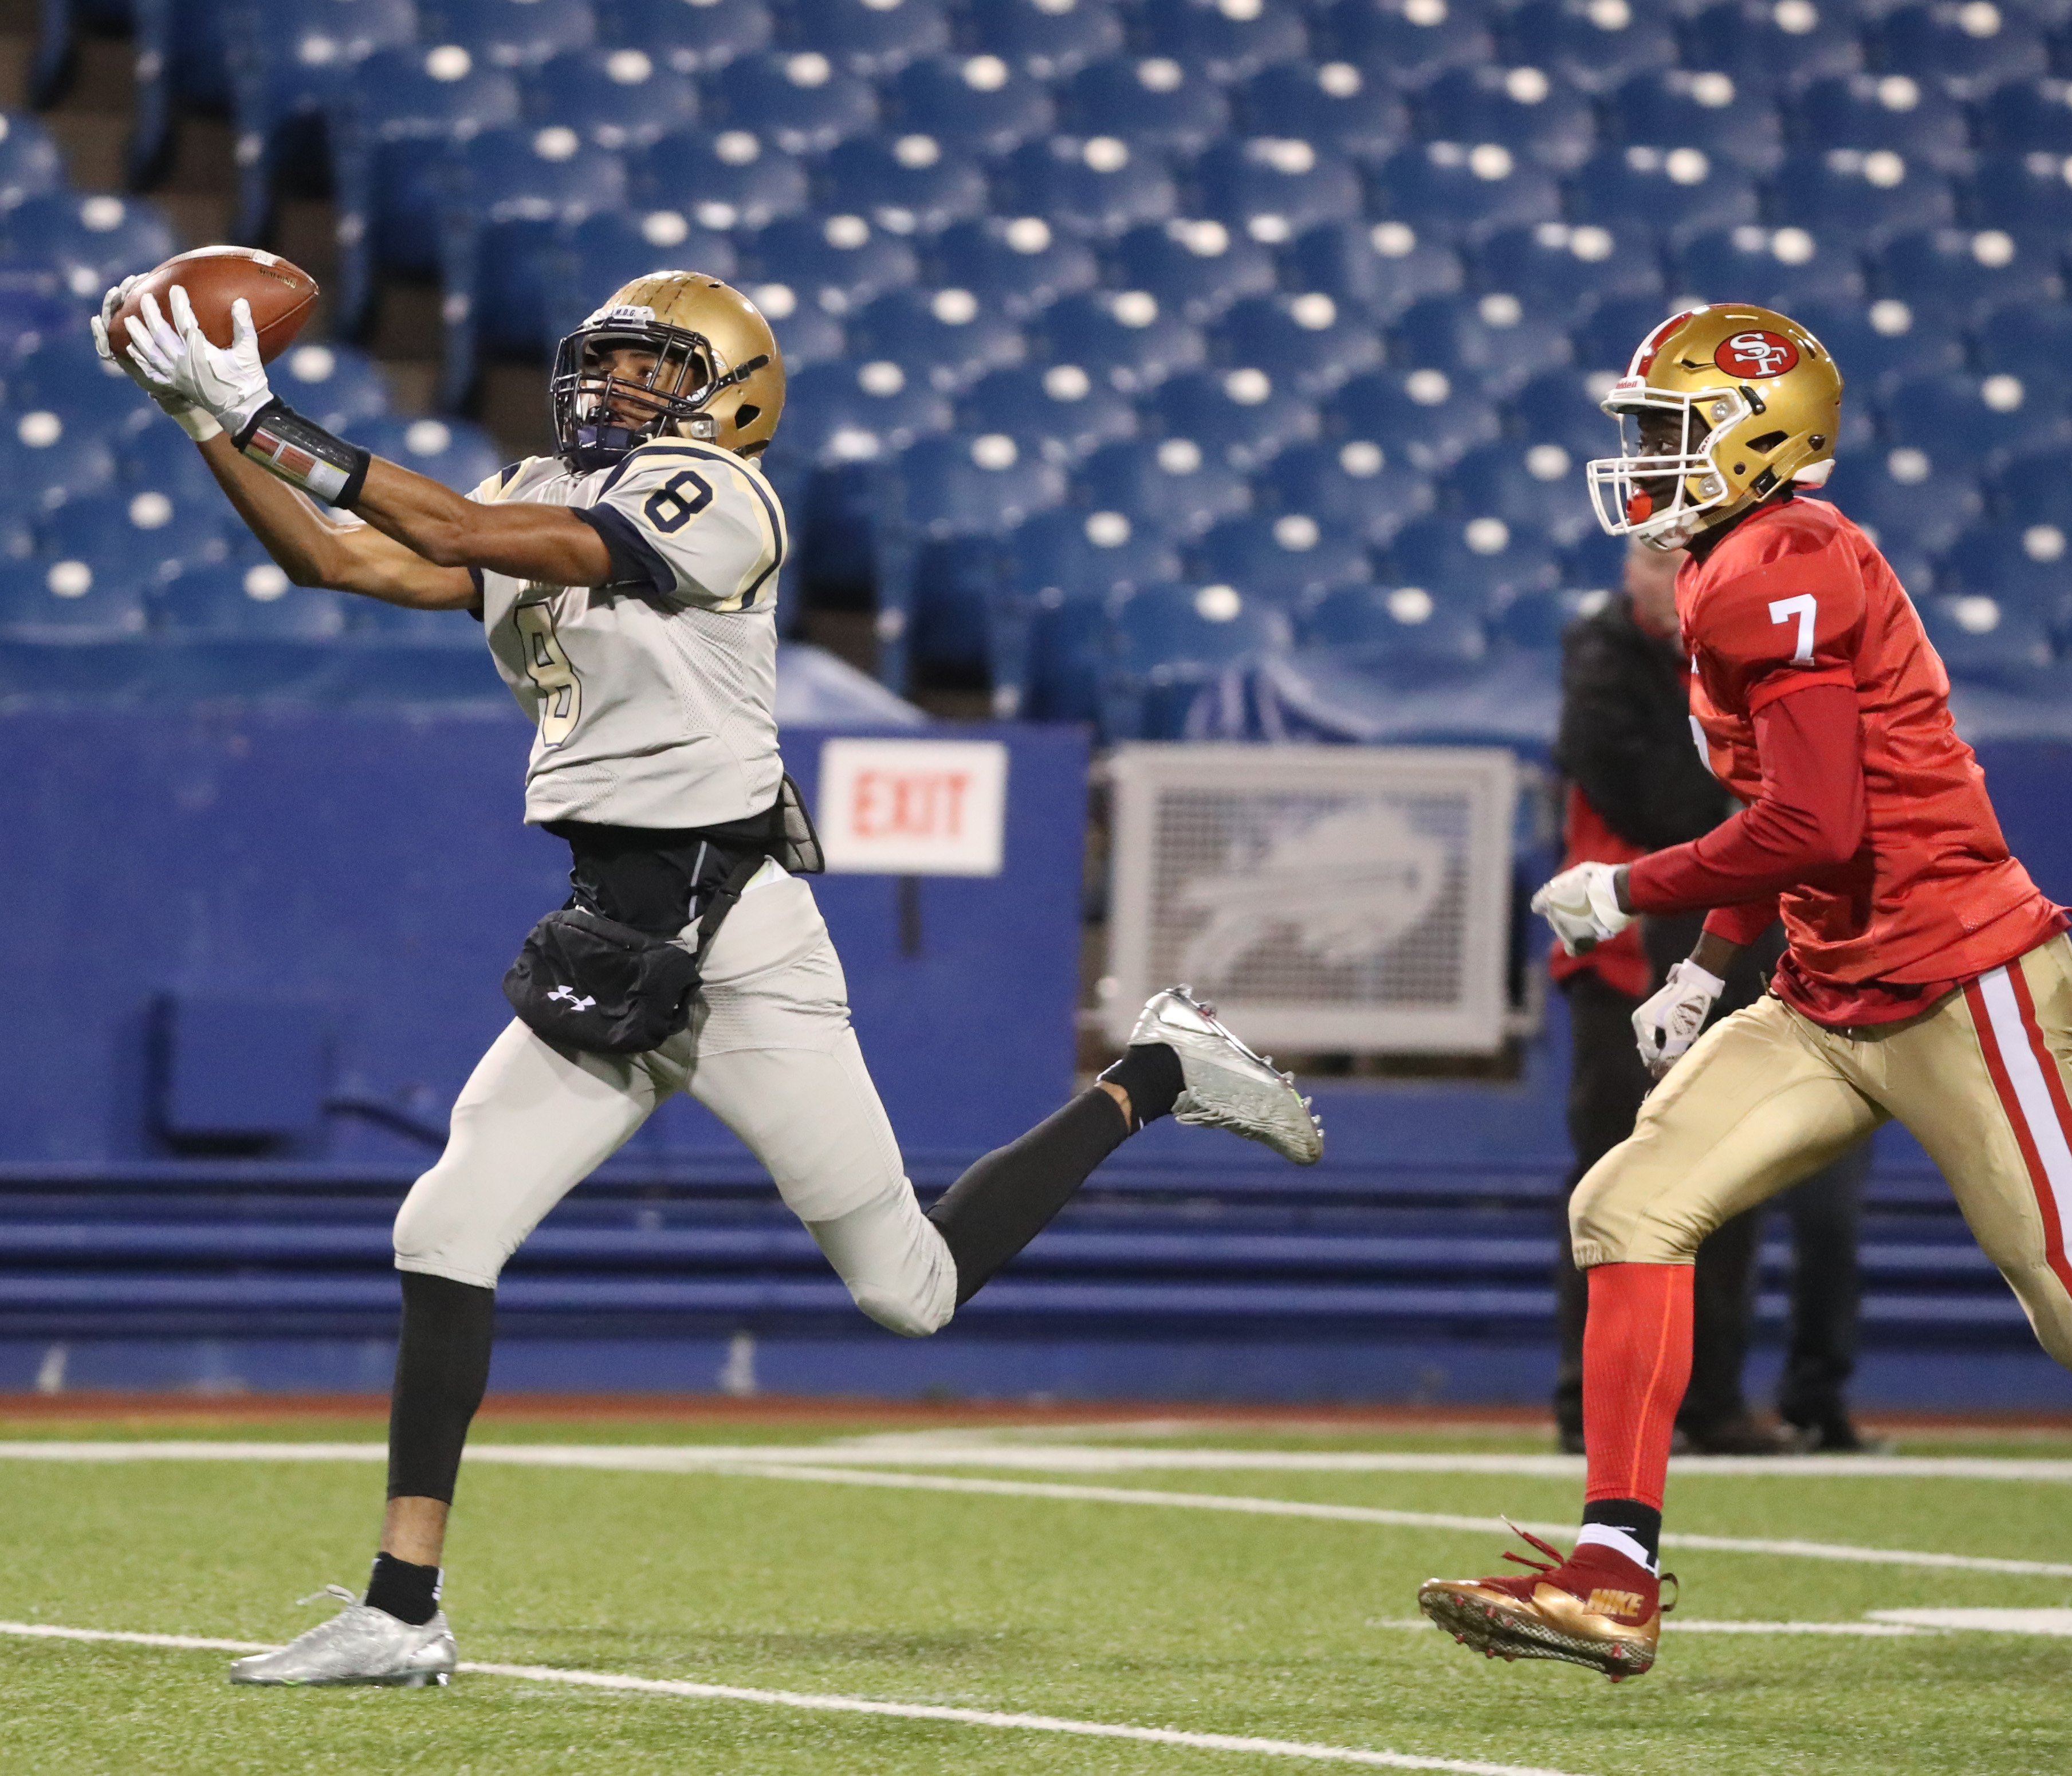 Paul Woods hauls in a 43-yard reception that led to Canisius' first touchdown during the Crusaders' triumph over St. Francis in the Monsignor Martin High School Athletic Association championship game at New Era Field. (James P. McCoy/Buffalo News)